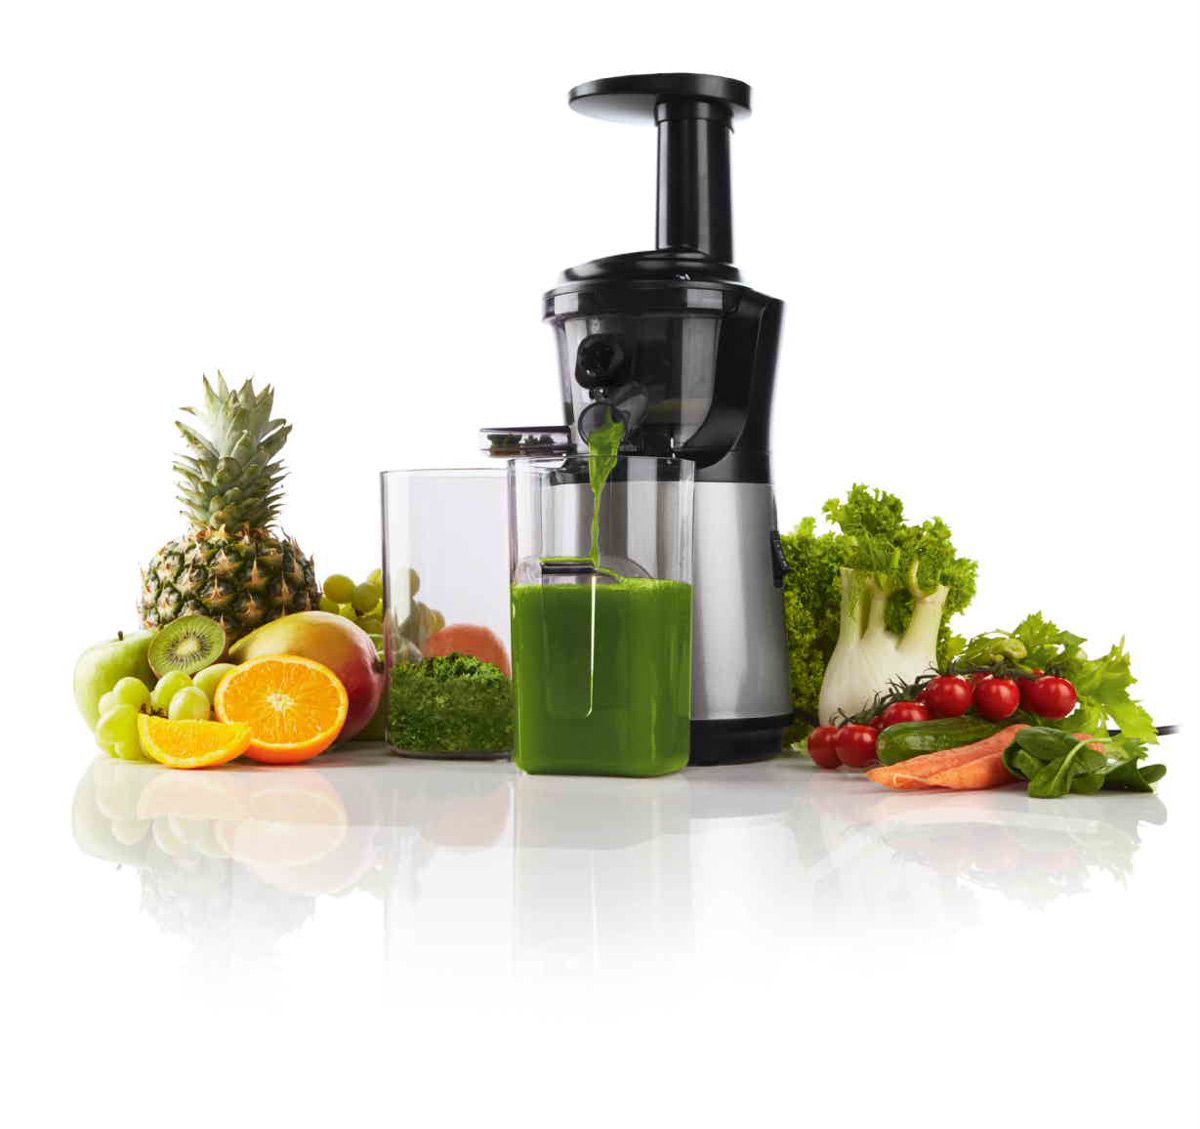 Silvercrest slowjuicer